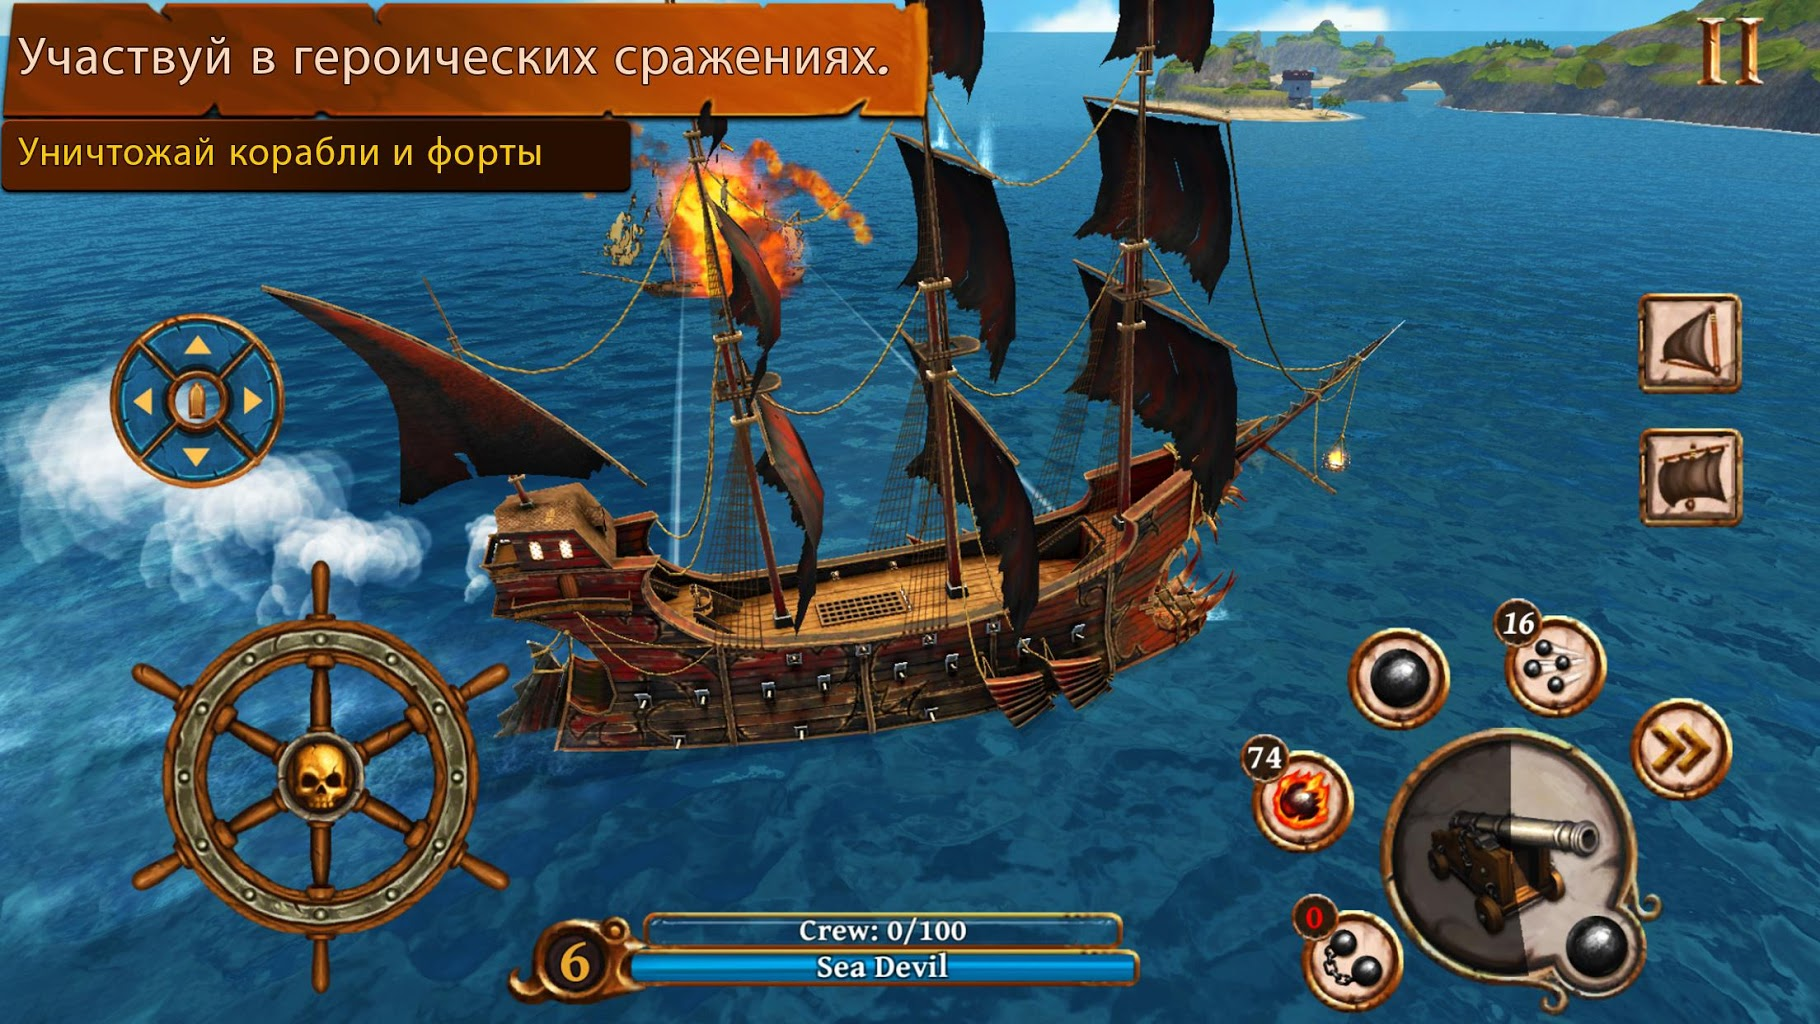 Download Ships of Battle - Age of Pirates - Warship Battle